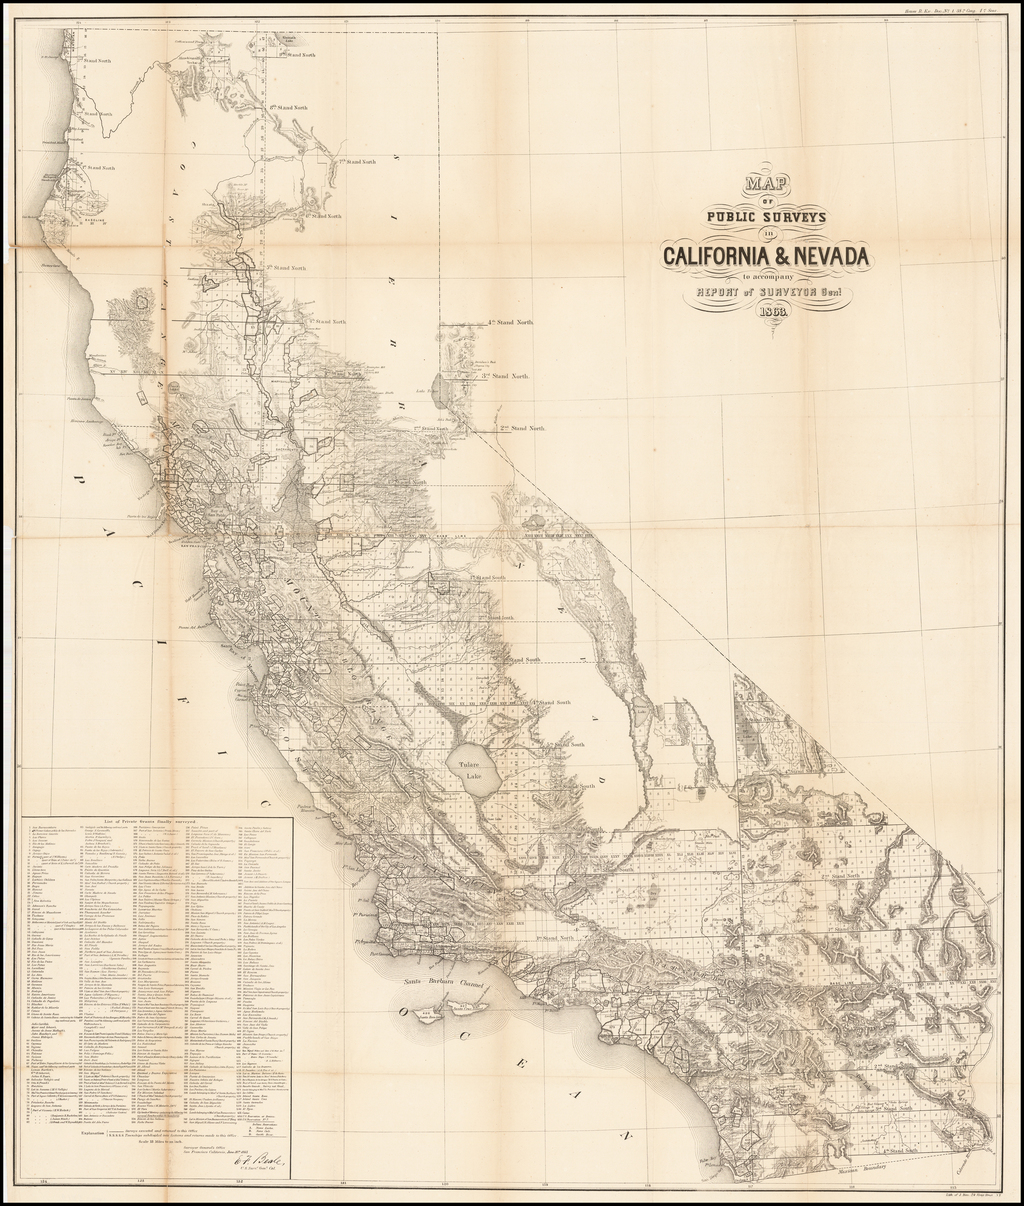 Map of Public Surveys in California & Nevada to Accompany Report of Surveyor Genl.  1863 By General Land Office